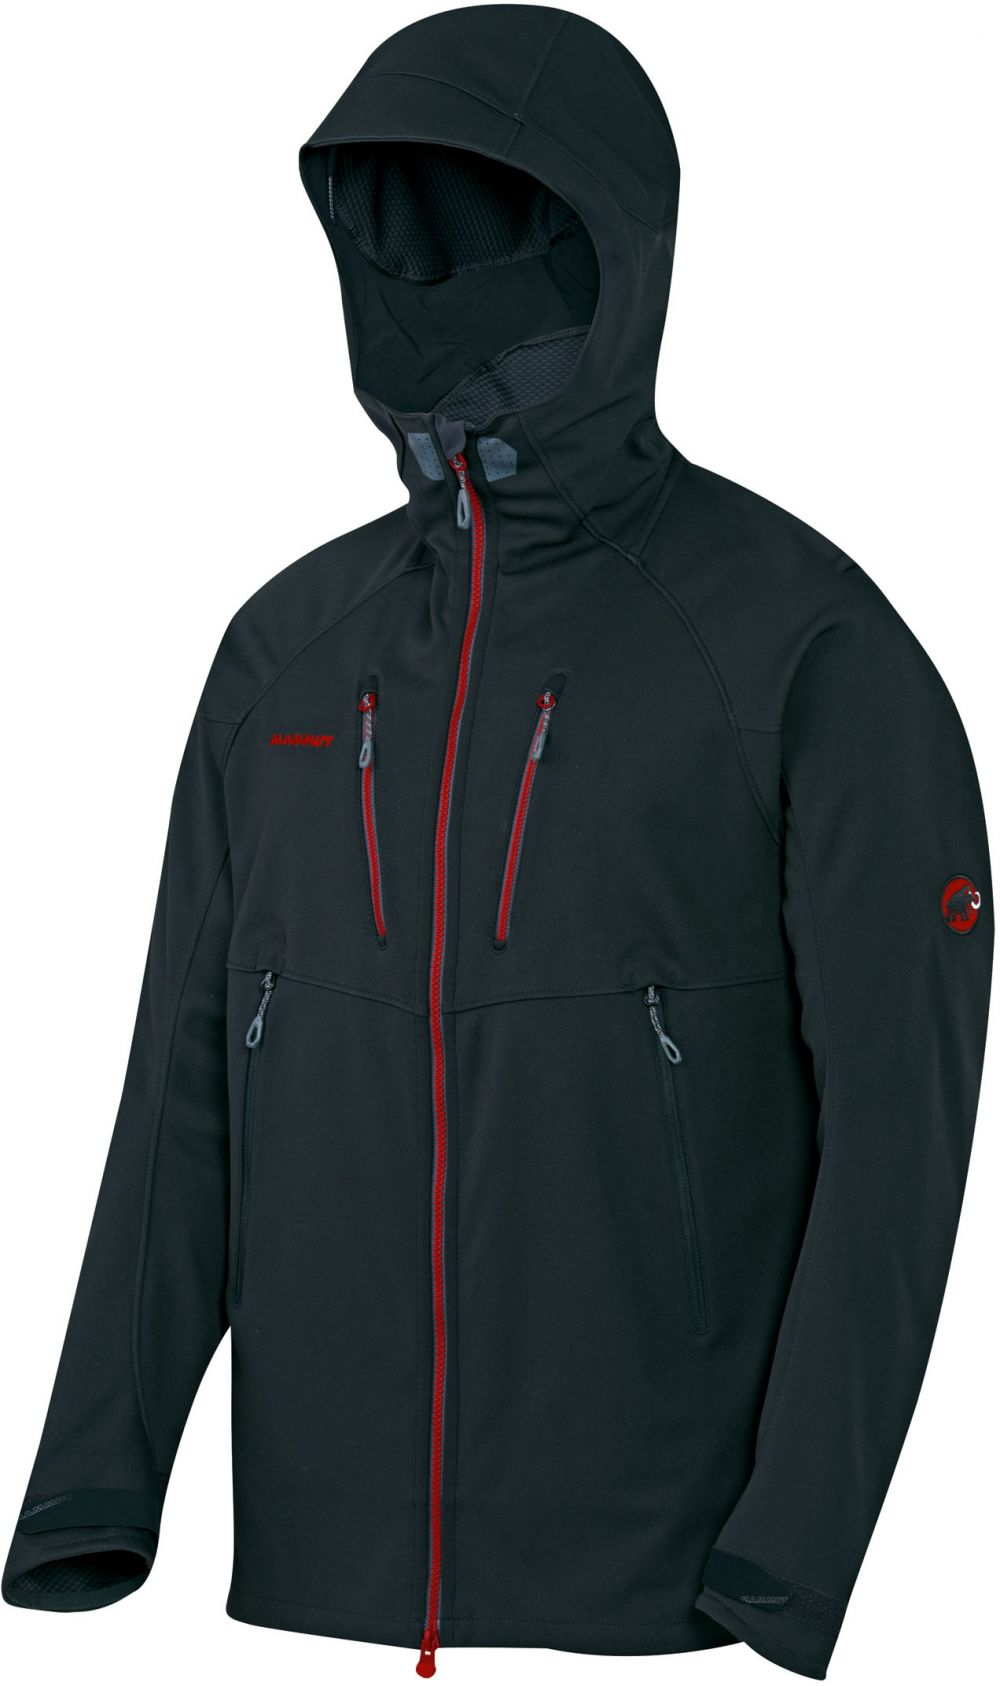 check out ee6d8 dc519 Mammut Ultimate Hoody - Softshells - Gipfelrausch.com